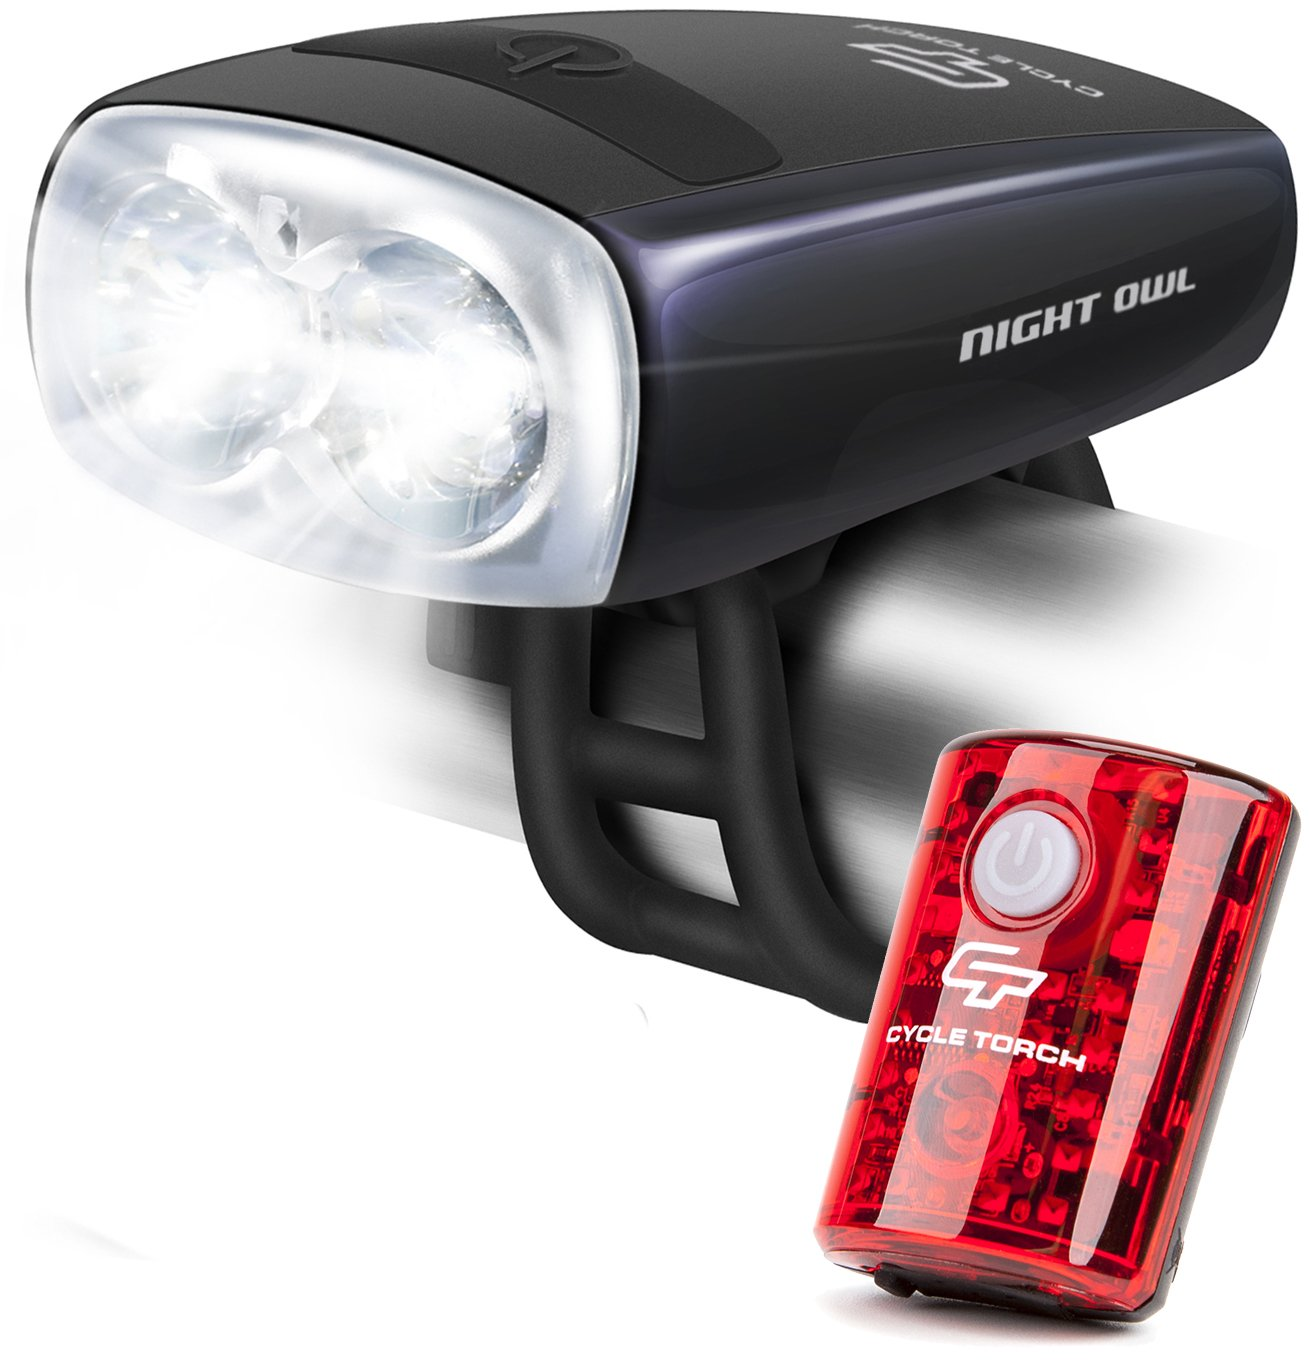 Cycle Torch Night Owl USB Rechargeable Bike Light Set